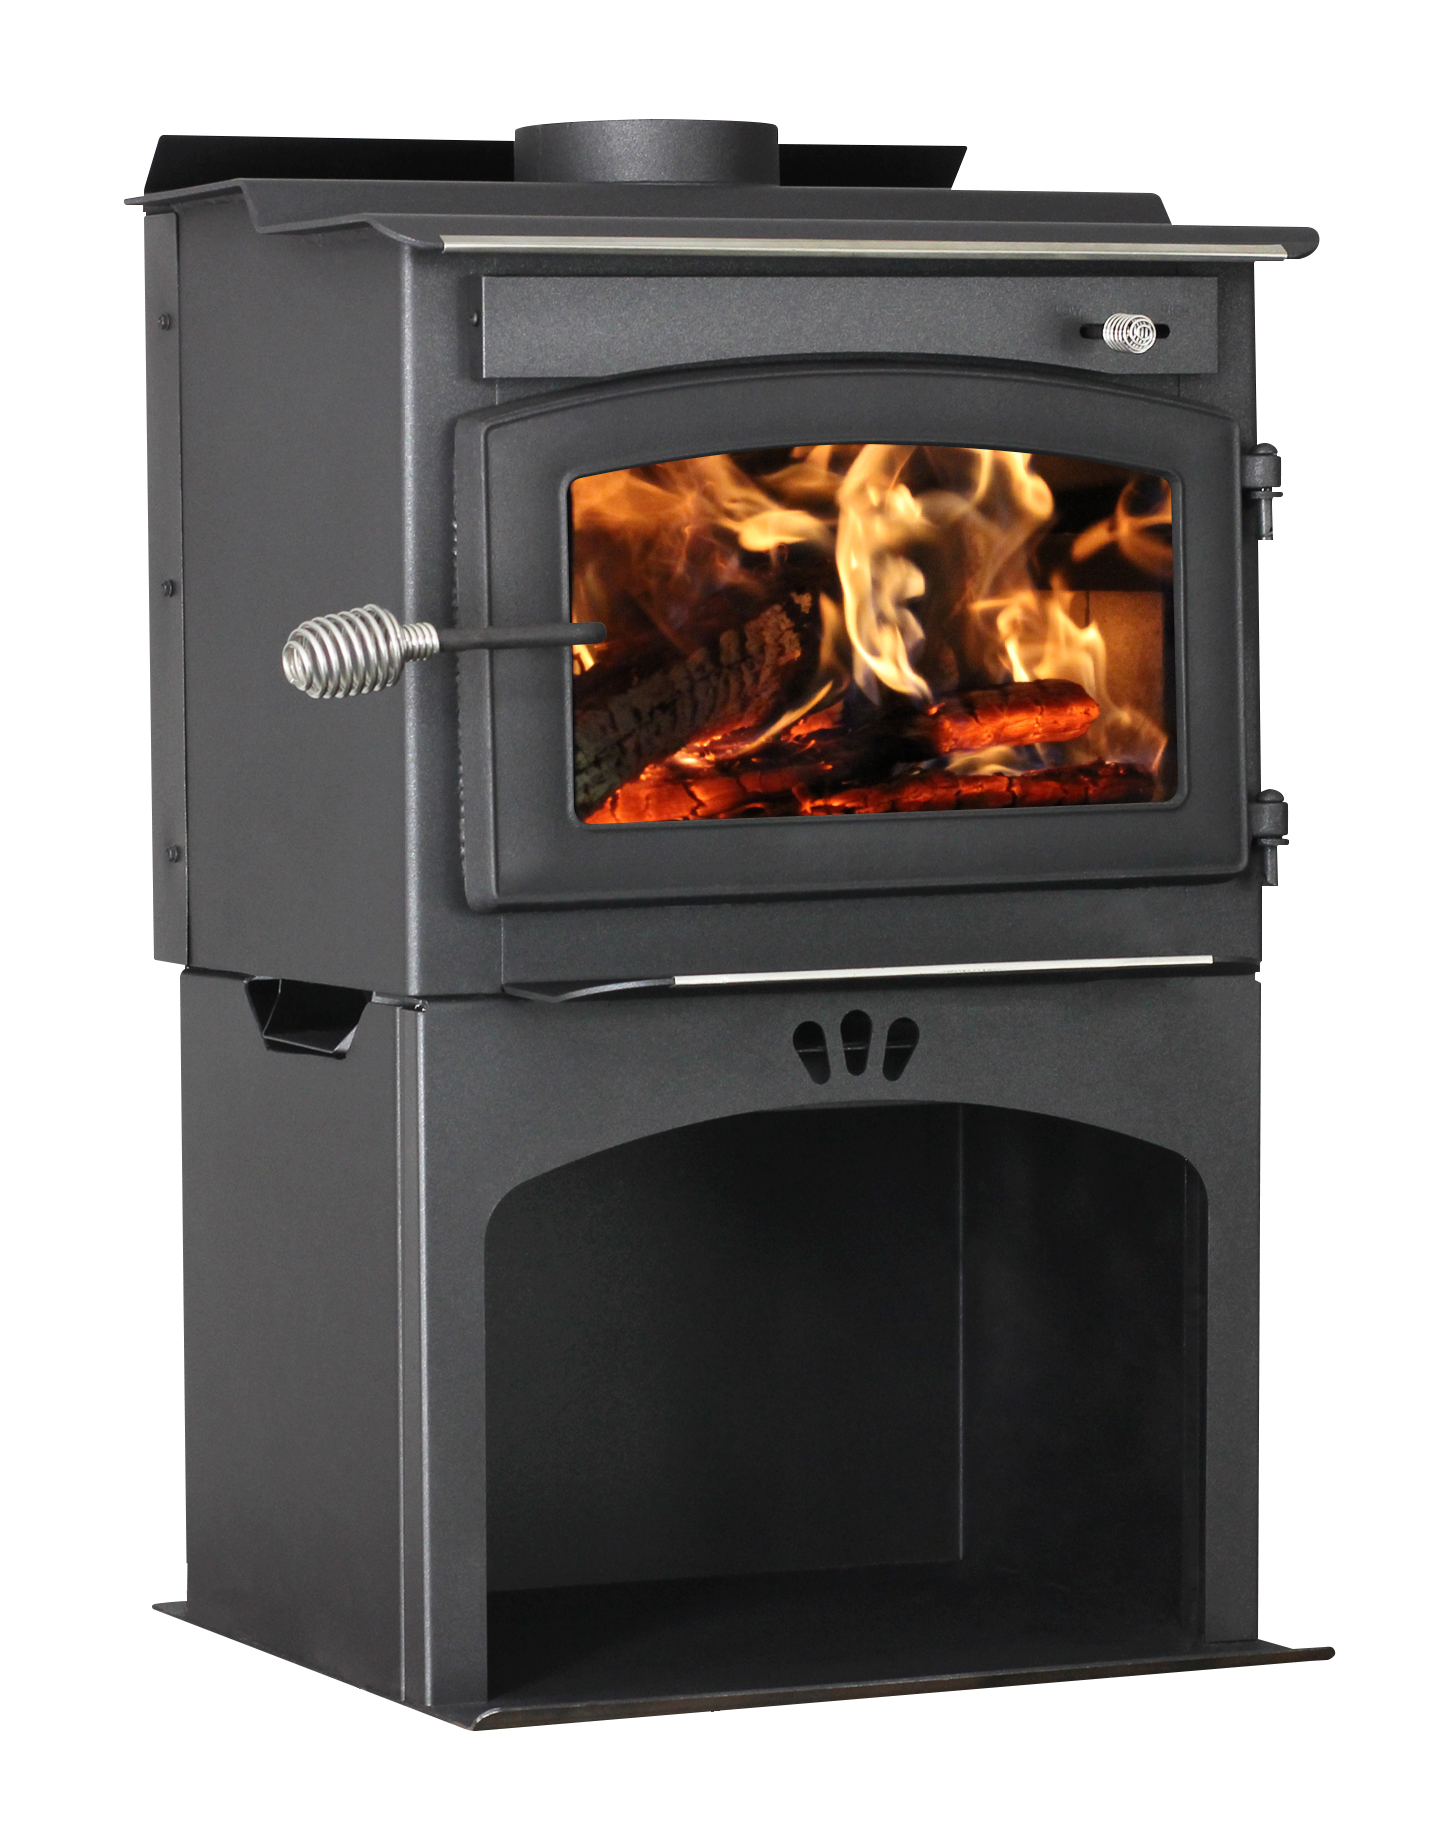 Defender 1,200 Sq. Ft. Wood Stove with Storage by United States Stove Company